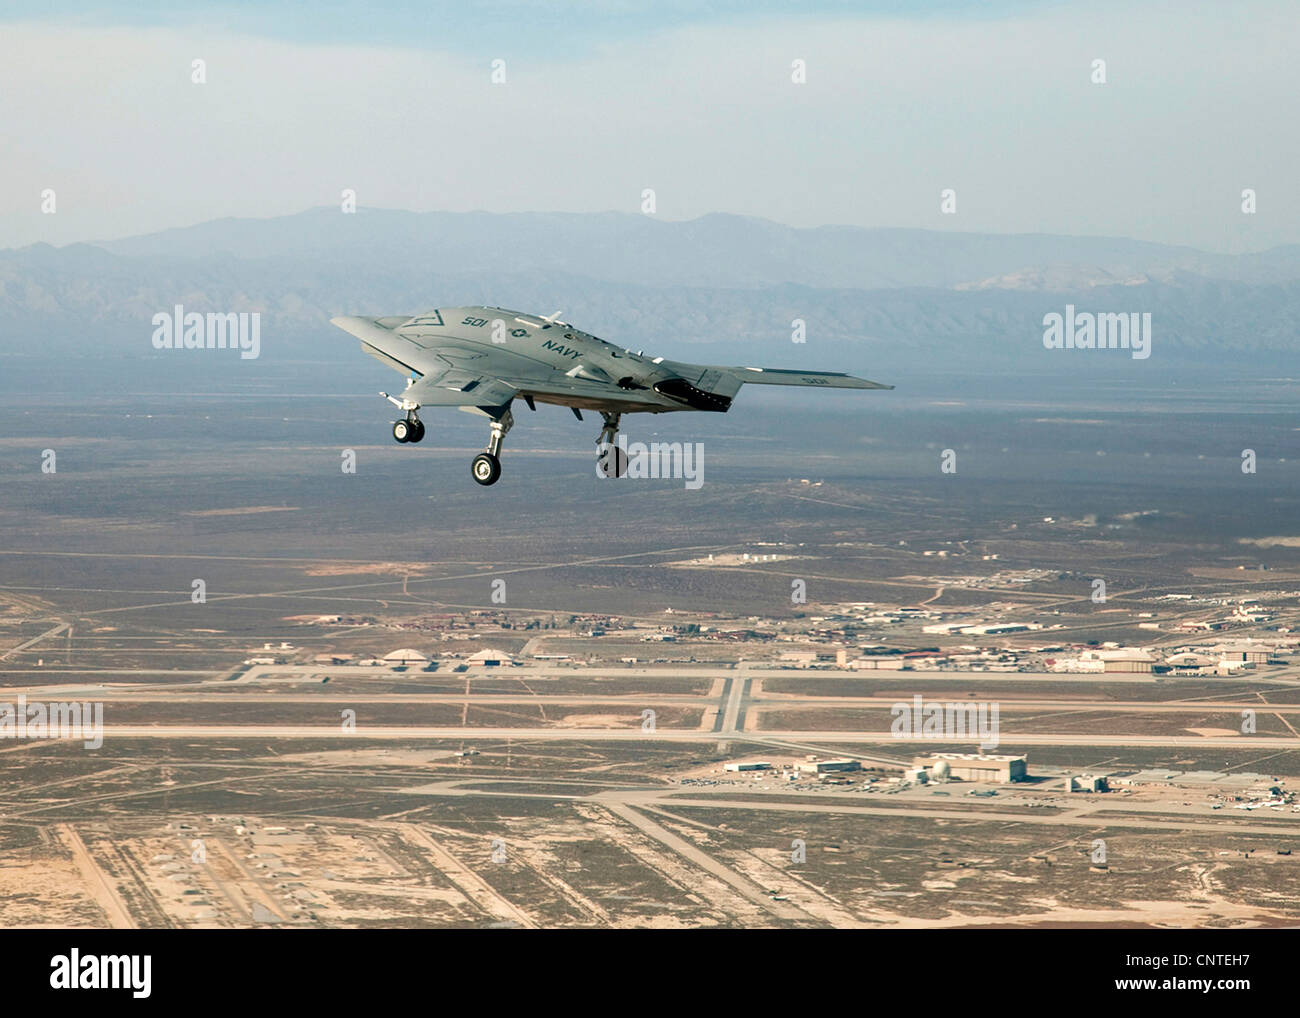 X-47B next generation unmanned aerial drone inflight February 4, 2011 at Edwards Air Force Base, CA. - Stock Image